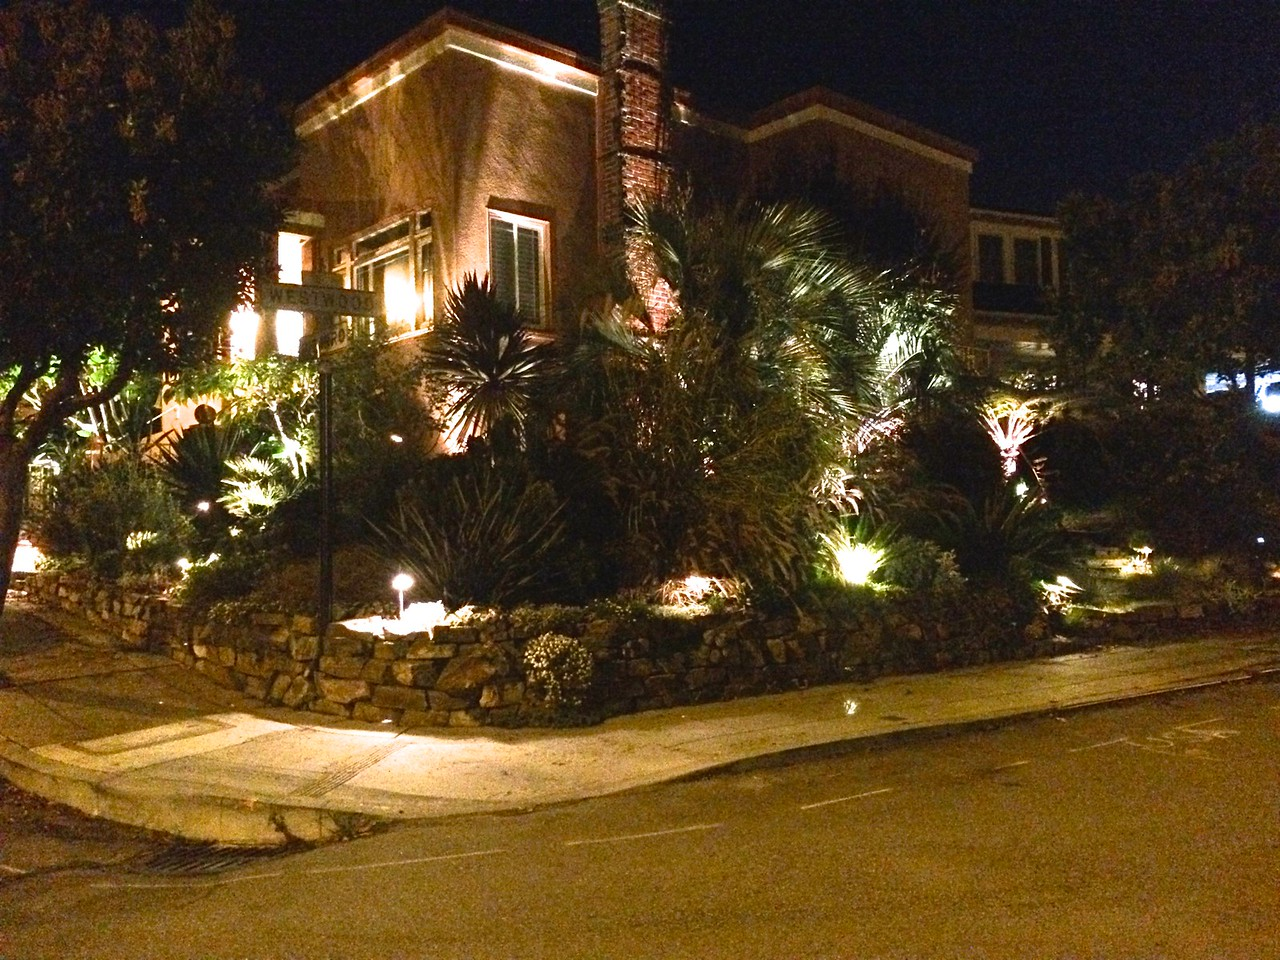 30 fixture outdoor lighting project.